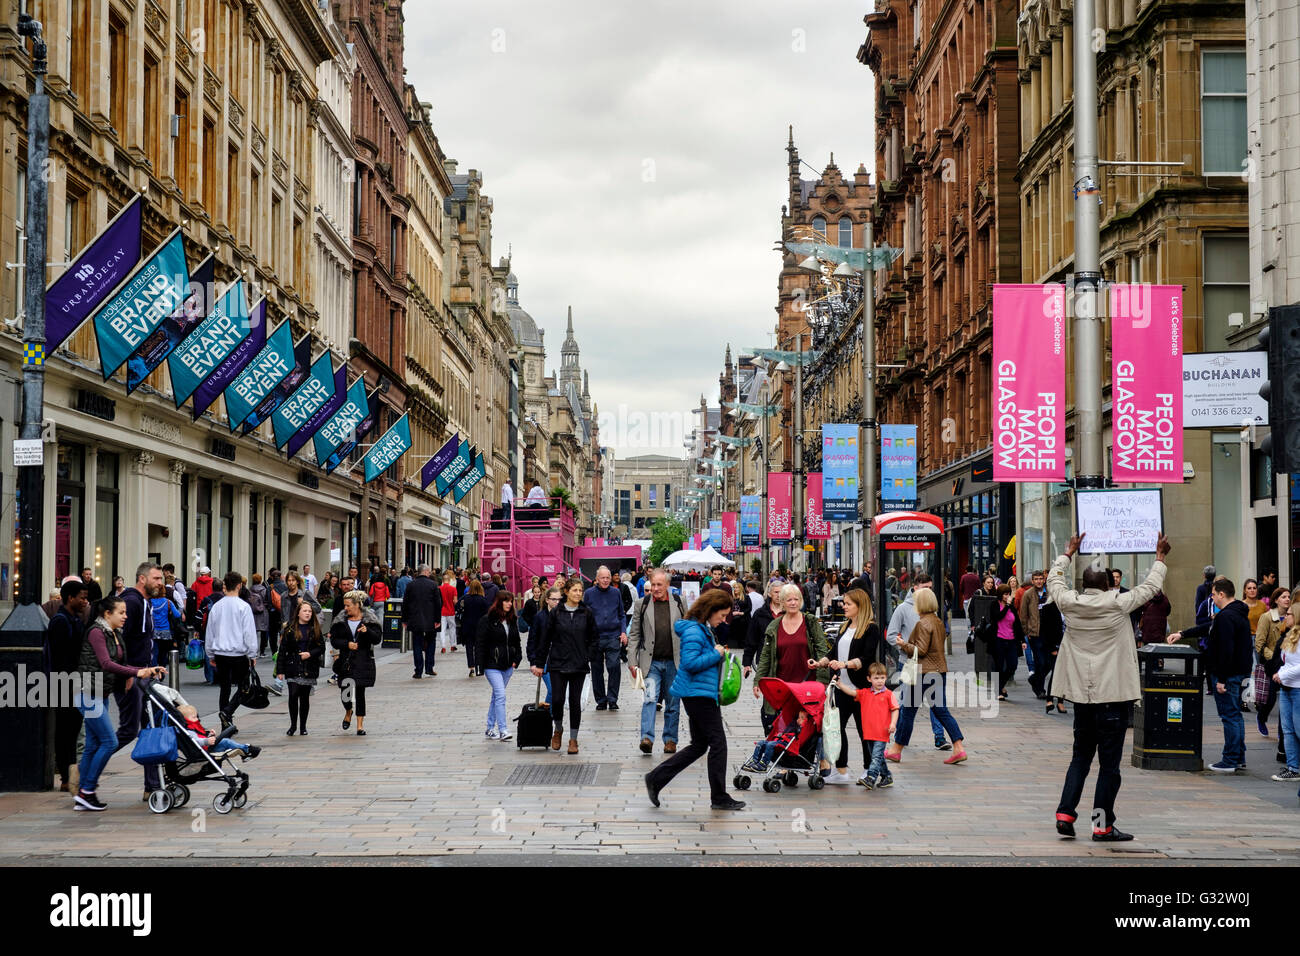 View of historic buildings on Buchanan Street, popular shopping street,  in central Glasgow United Kingdom - Stock Image